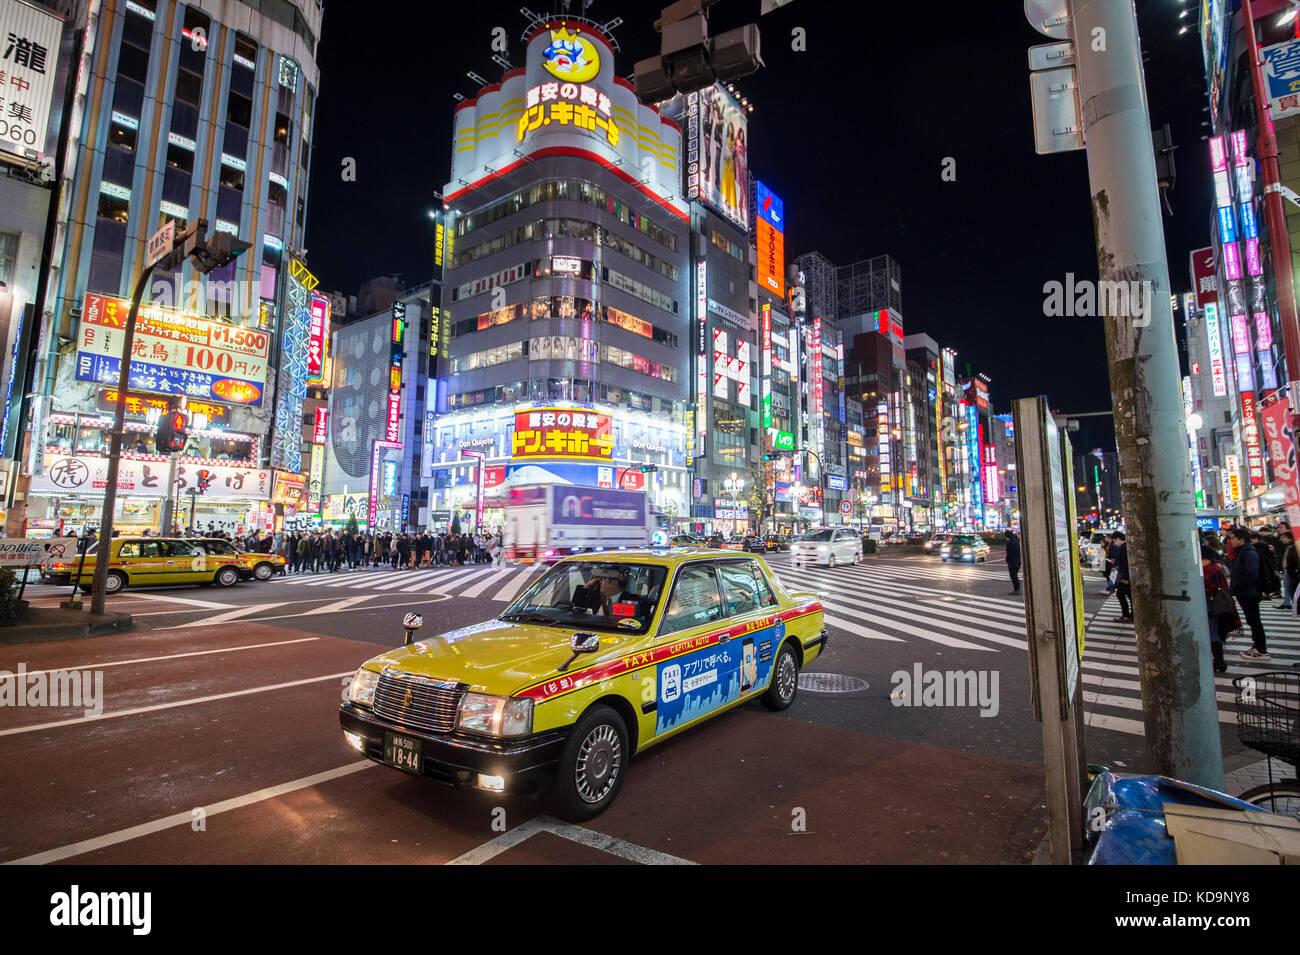 TOKYO - DECEMBER 31, 2016: A taxi driver is waiting for a passenger in Shinjuko district in Tokyo at night. December - Stock Image